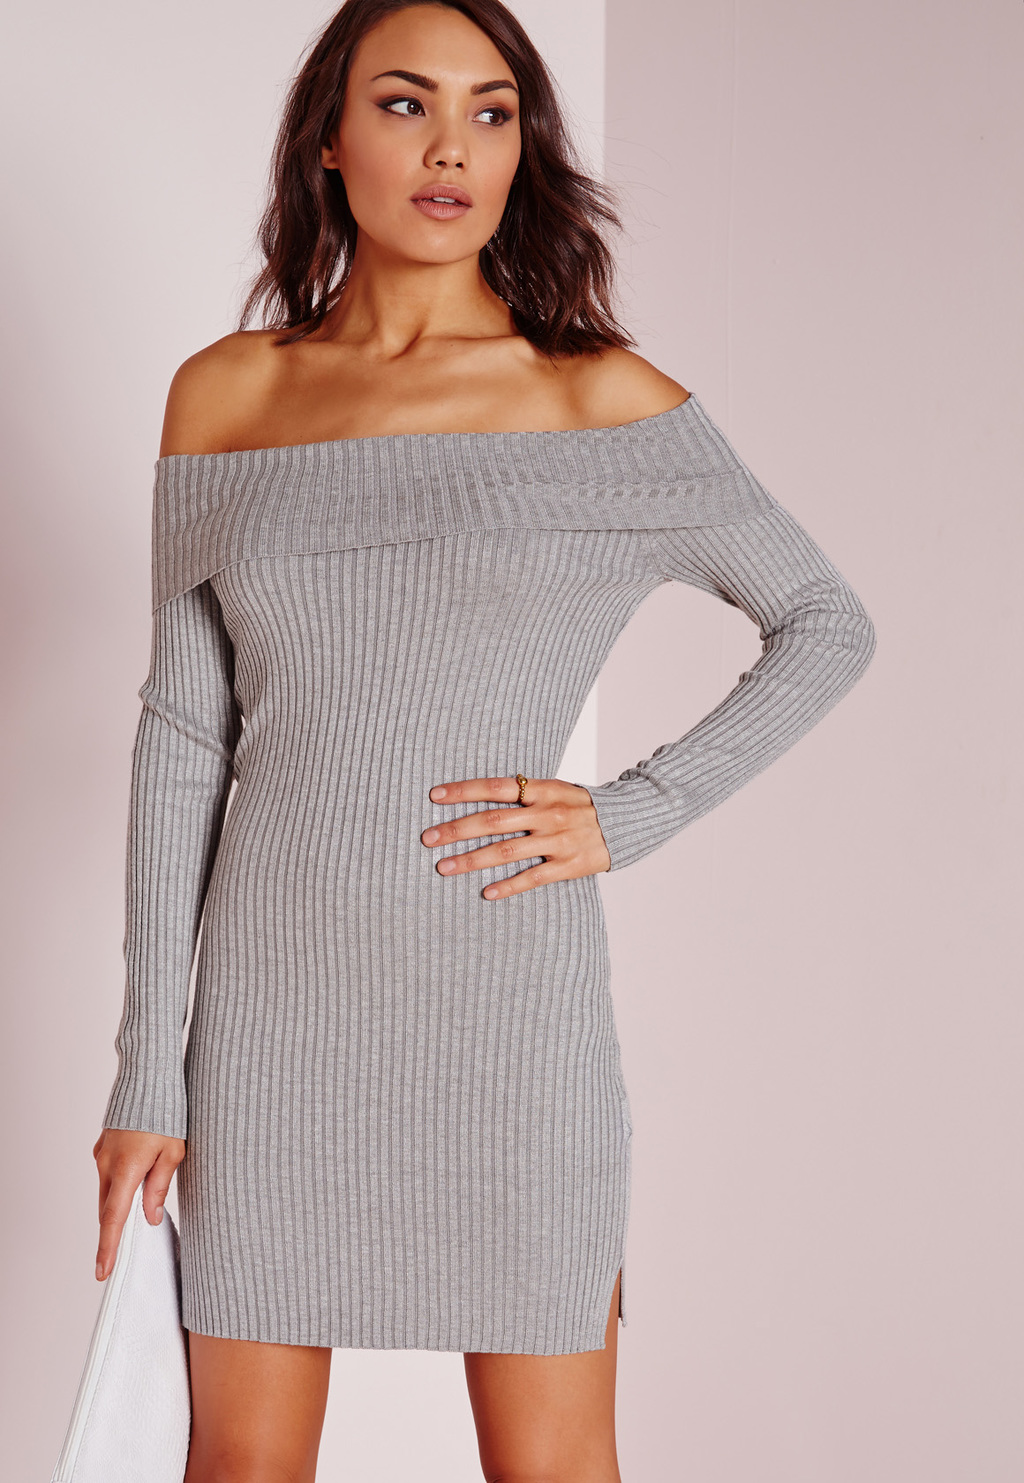 Bardot Mini Jumper Dress Grey, Grey - style: jumper dress; neckline: off the shoulder; pattern: plain; predominant colour: light grey; occasions: casual, creative work; length: just above the knee; fit: body skimming; fibres: viscose/rayon - 100%; sleeve length: long sleeve; sleeve style: standard; texture group: knits/crochet; pattern type: fabric; season: s/s 2016; wardrobe: highlight